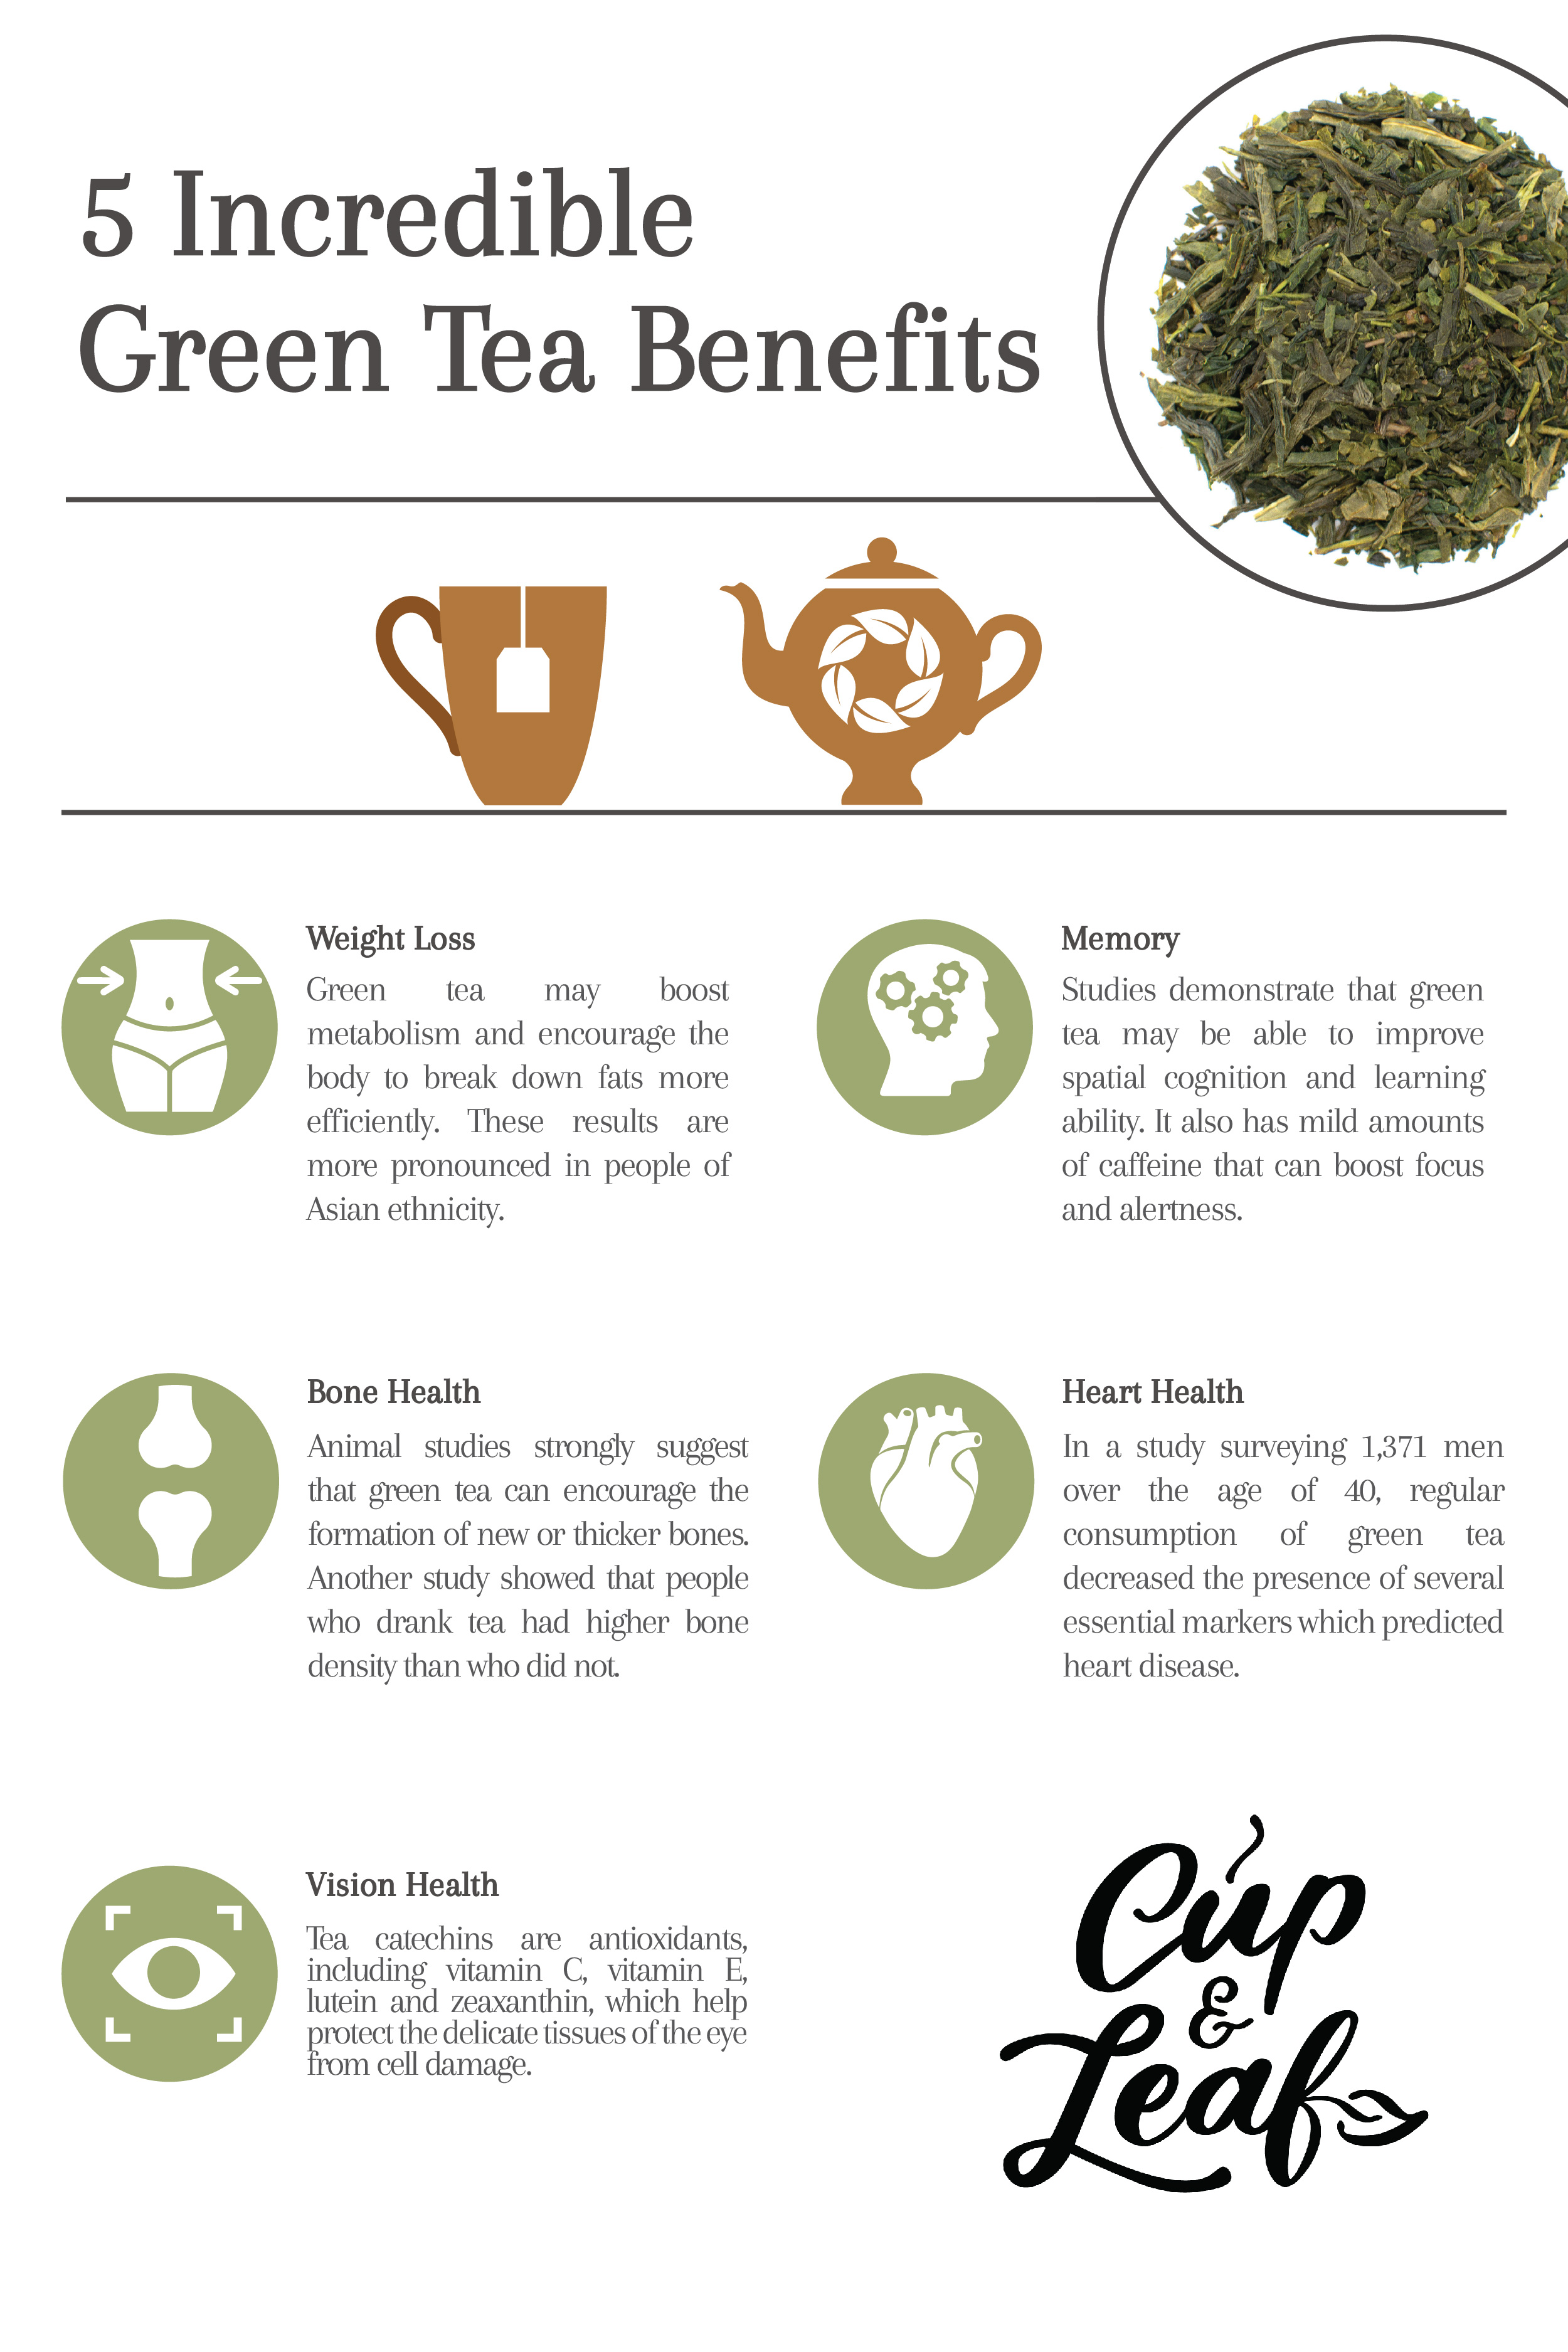 7 green tea benefits and how to prepare the perfect cup